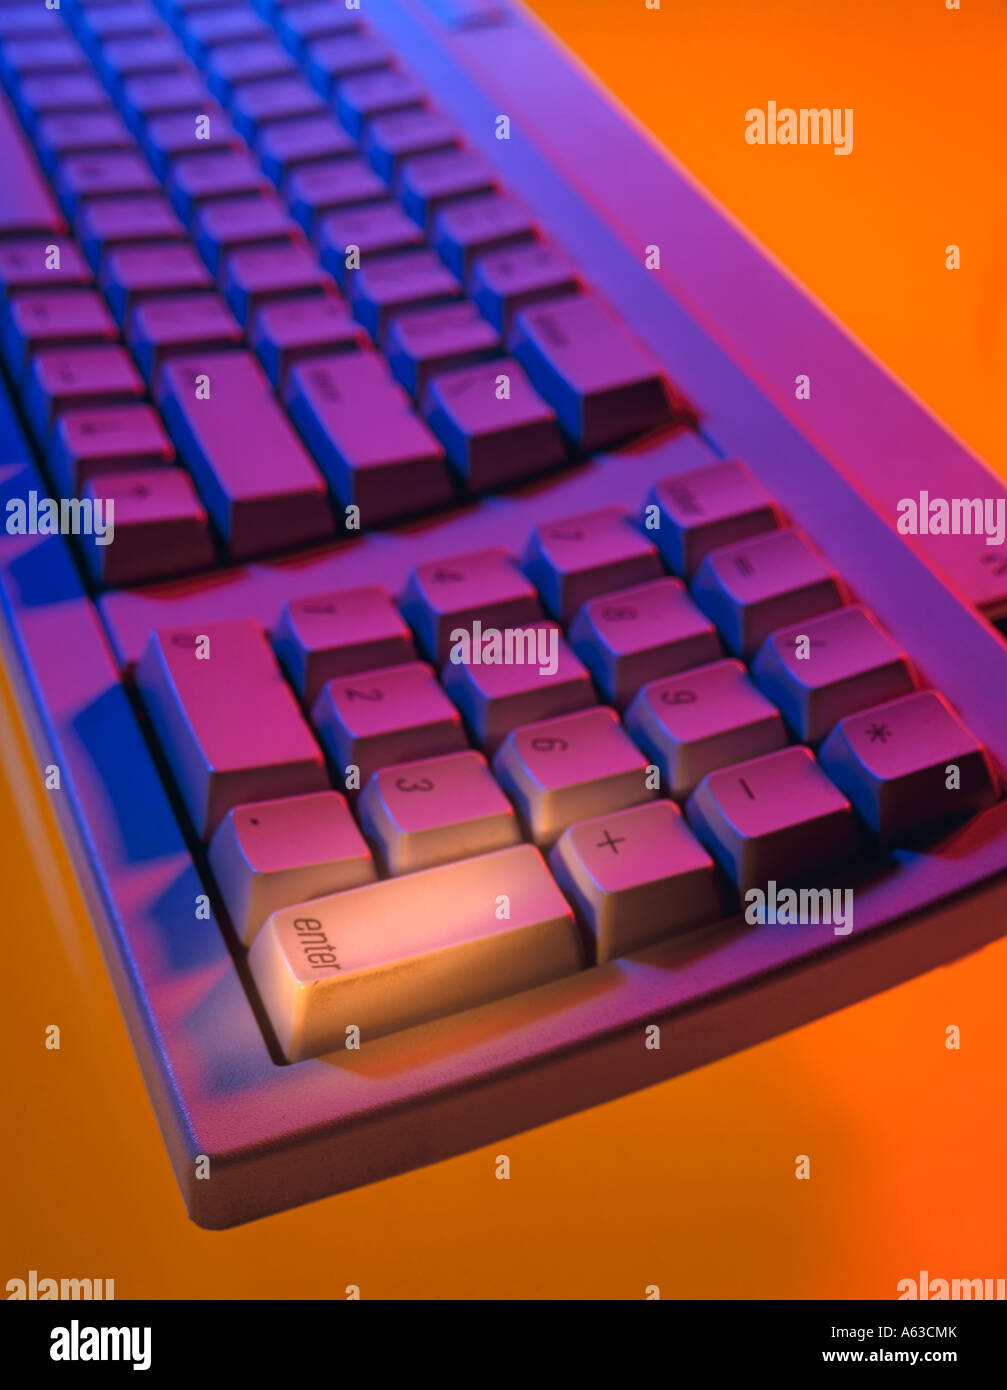 COMPUTER KEYBOARD WITH HIGHLIGHT ON ENTER KEY - Stock Image